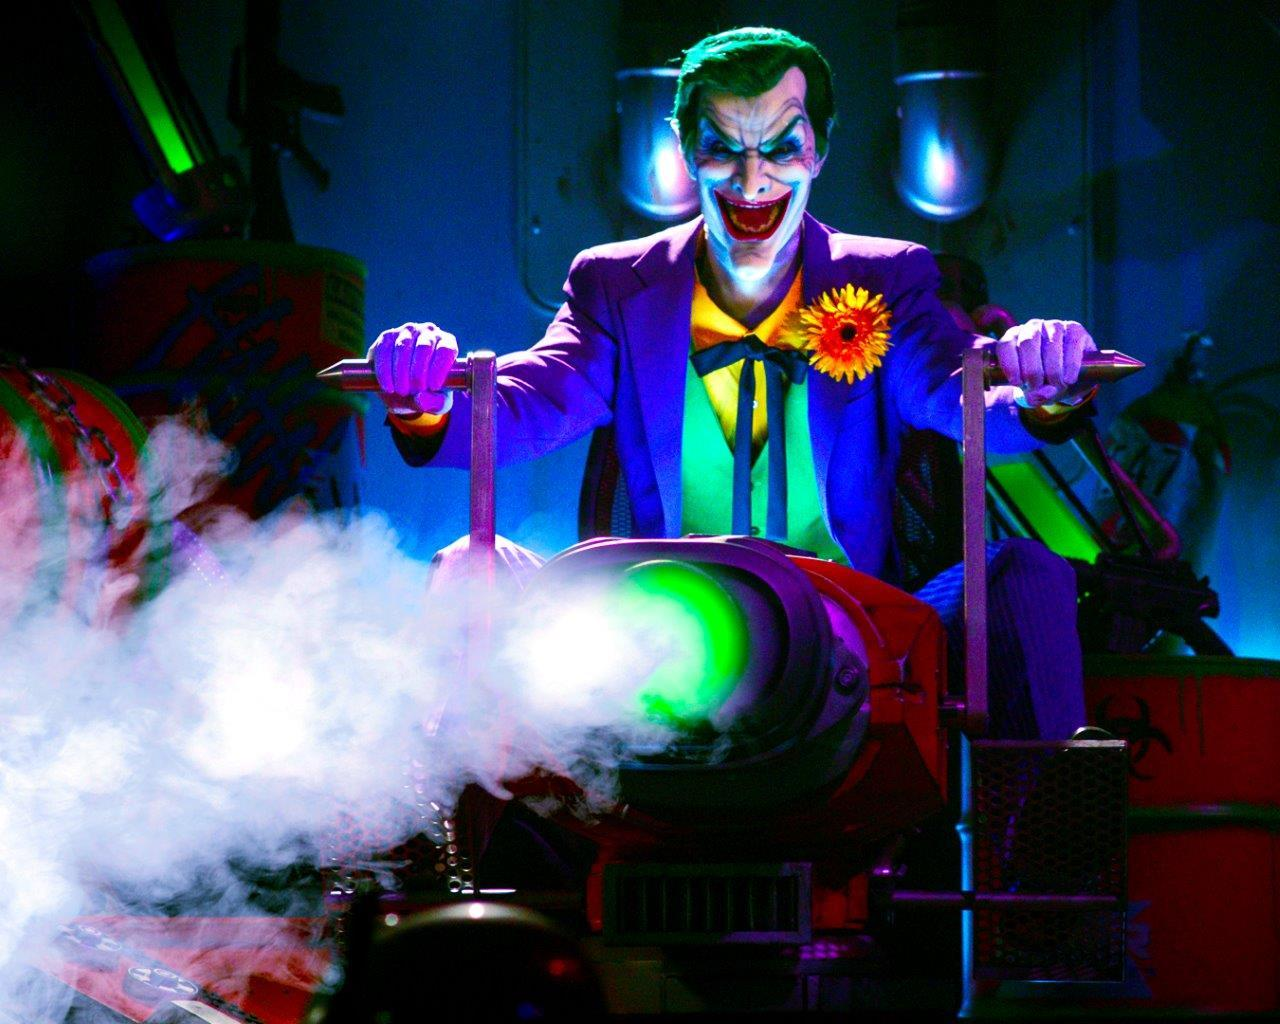 The Joker sprays laughing gas on riders at Six Flags Magic Mountain's new JUSTICE LEAGUE: Battle for Metropolis attraction. Riders are members of the JUSTICE LEAGUE Reserve Team to save the City of Metropolis with climactic interactive battle scenes between the DC Super Heroes and Super-Villains. (Photo: Business Wire)